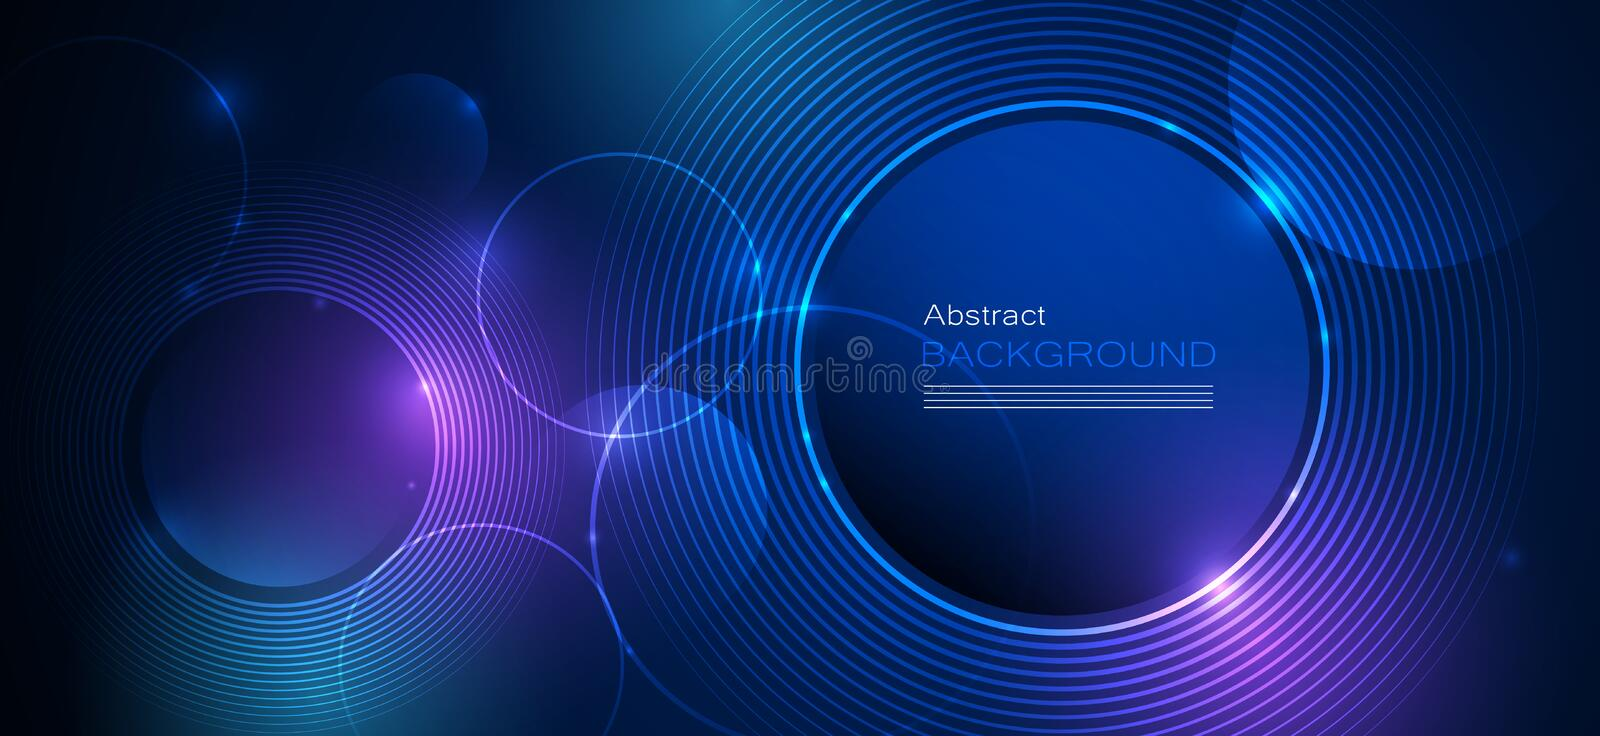 Illustration Abstract glowing, neon light effect, wave line, wavy pattern. Vector design communication techno on blue background. Futuristic digital technology royalty free illustration